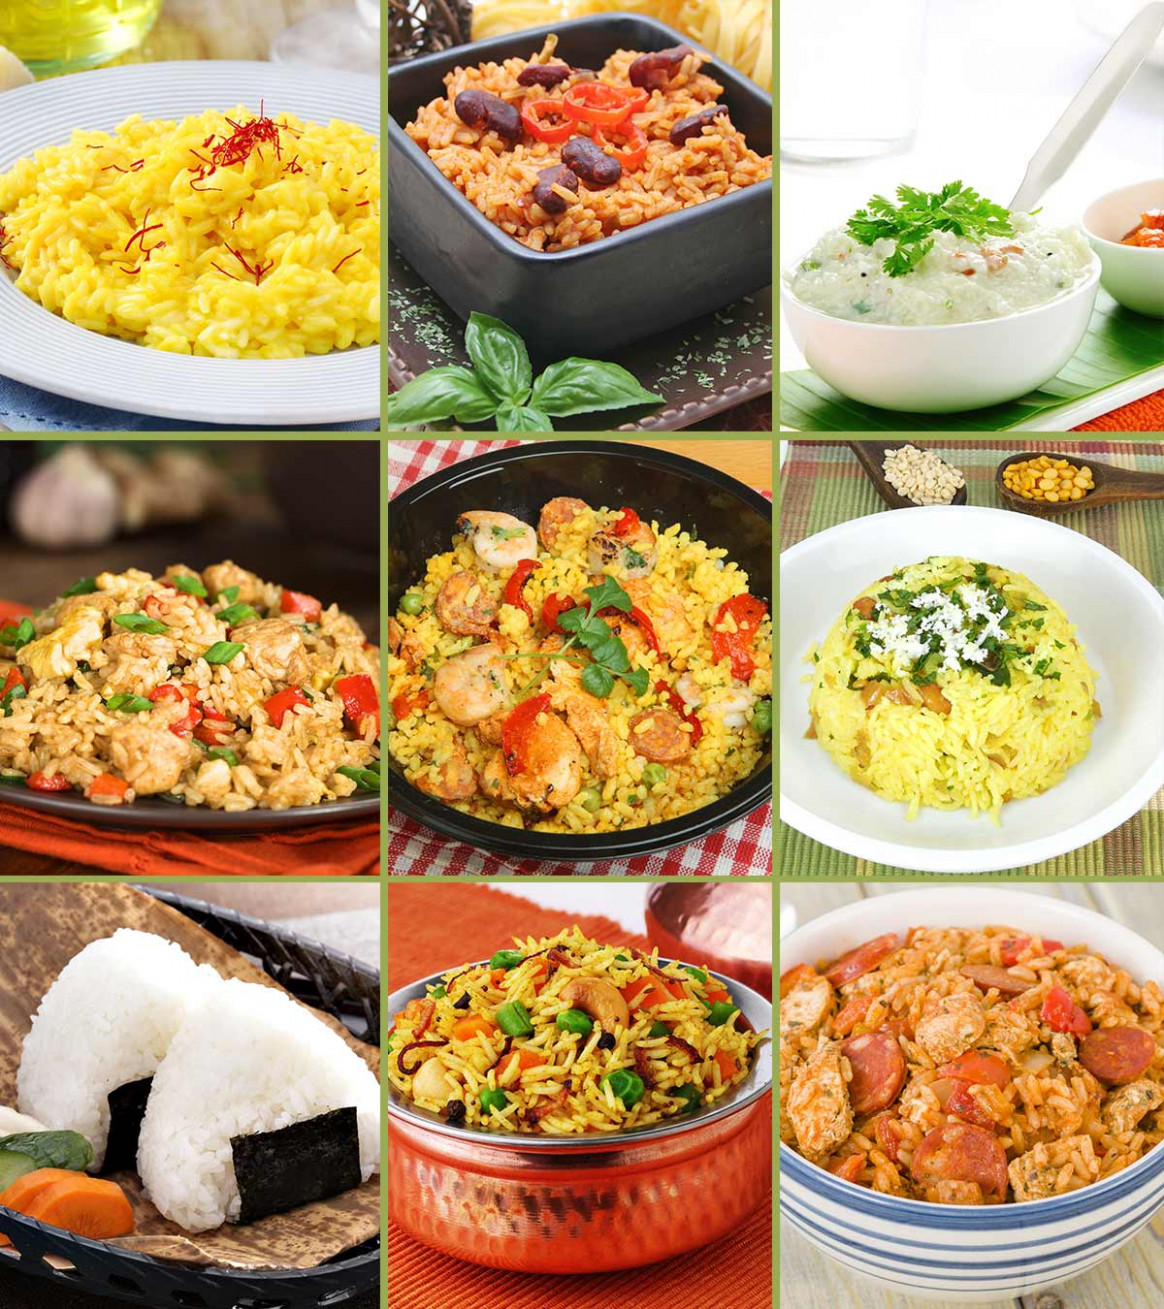 Top 13 Easy Rice Recipes For Kids - Easy Dinner Recipes That Are Kid Friendly